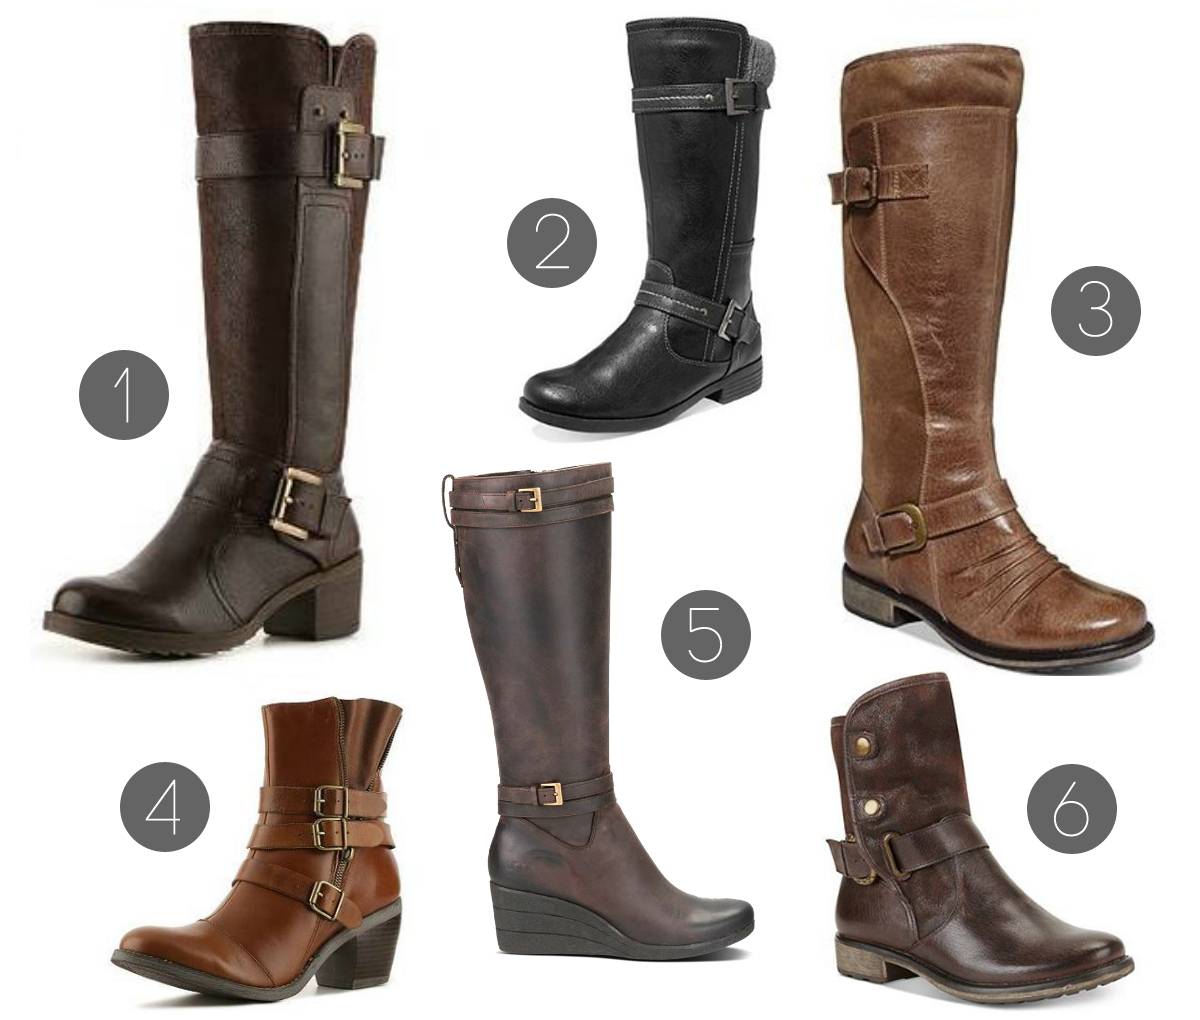 ROUNDUP // 12 STYLISH WINTER BOOTS